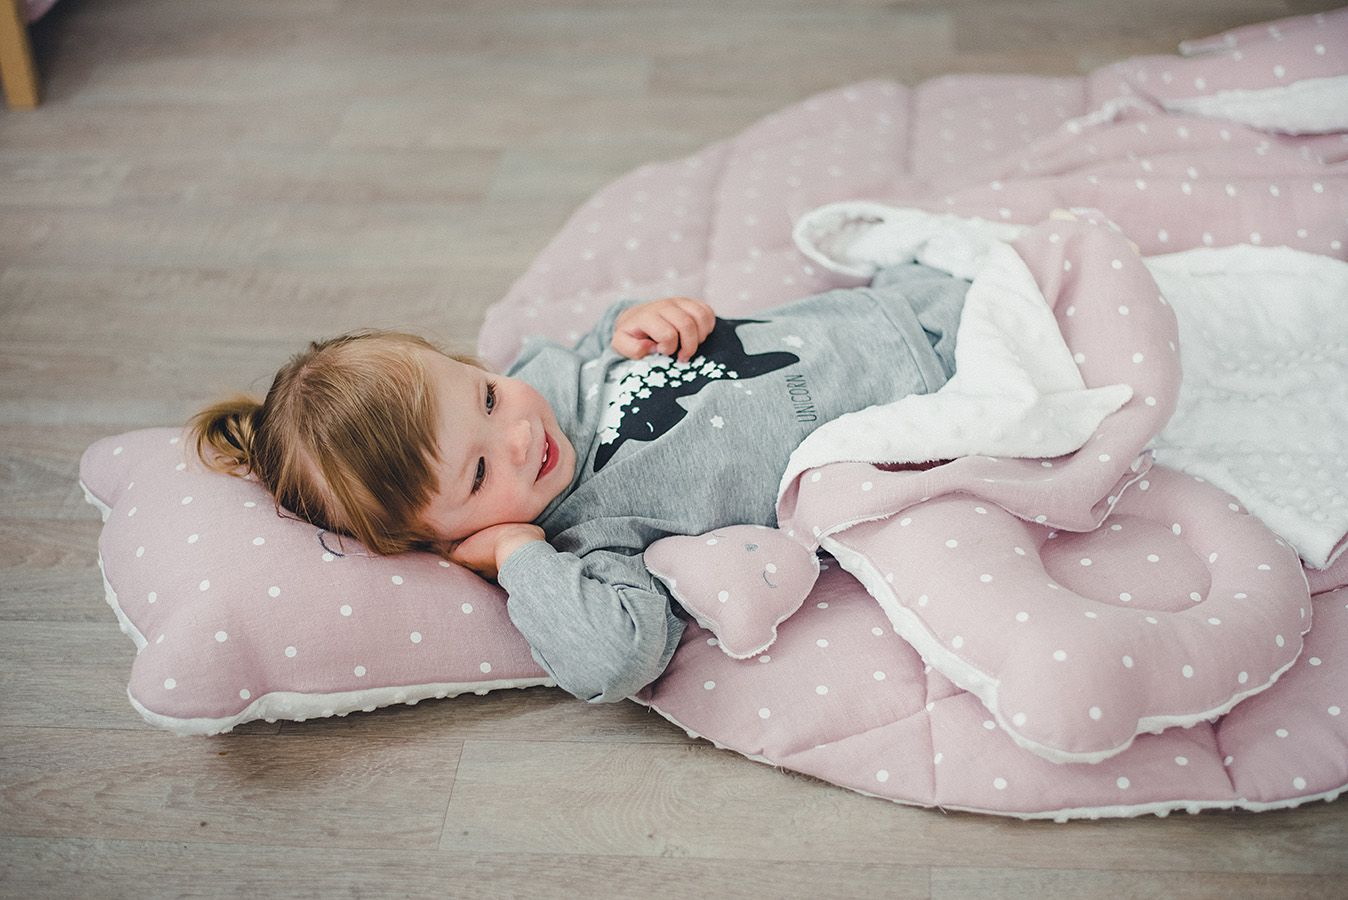 Pink Teddy Gym Play Mat Baby And Toddler Nursery Accesories Bedding Play Gyms Bathrobes Baby Play Areas Baby Activity Center Baby Play Mat